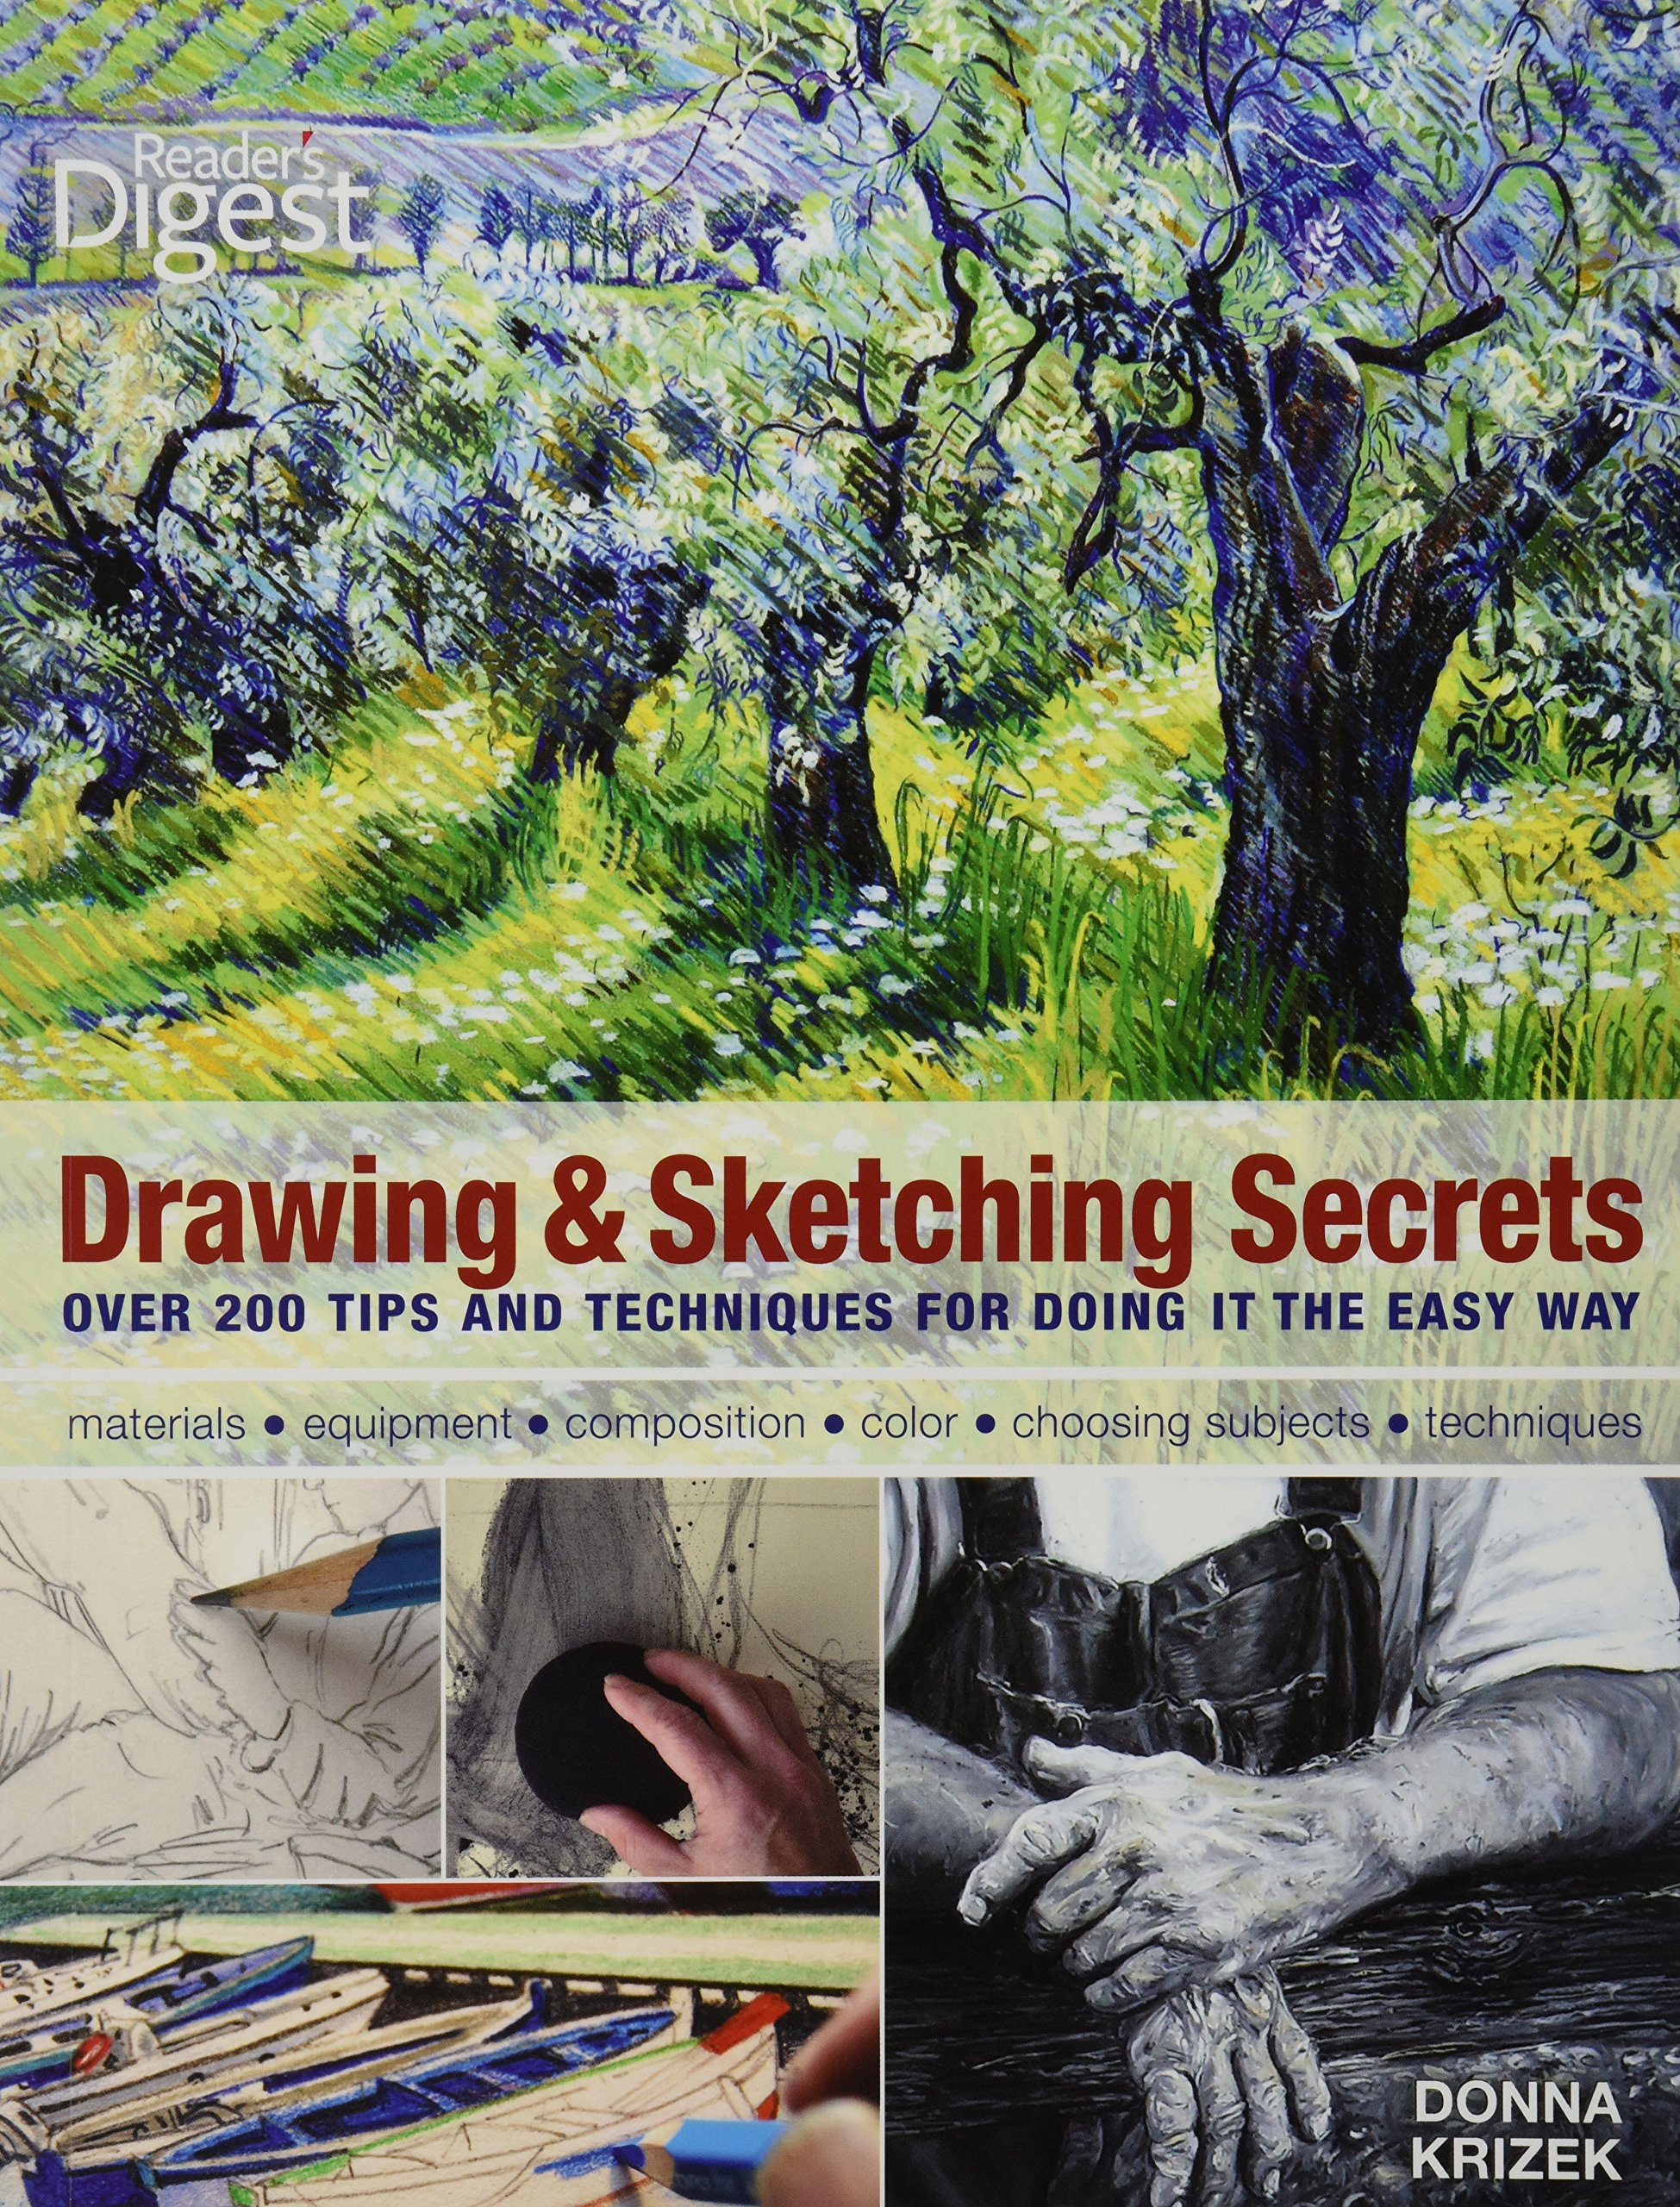 Drawing and sketching secrets 200 tips and techniques for drawing drawing and sketching secrets 200 tips and techniques for drawing the easy way donna krizek 9781606524893 amazon books fandeluxe Choice Image